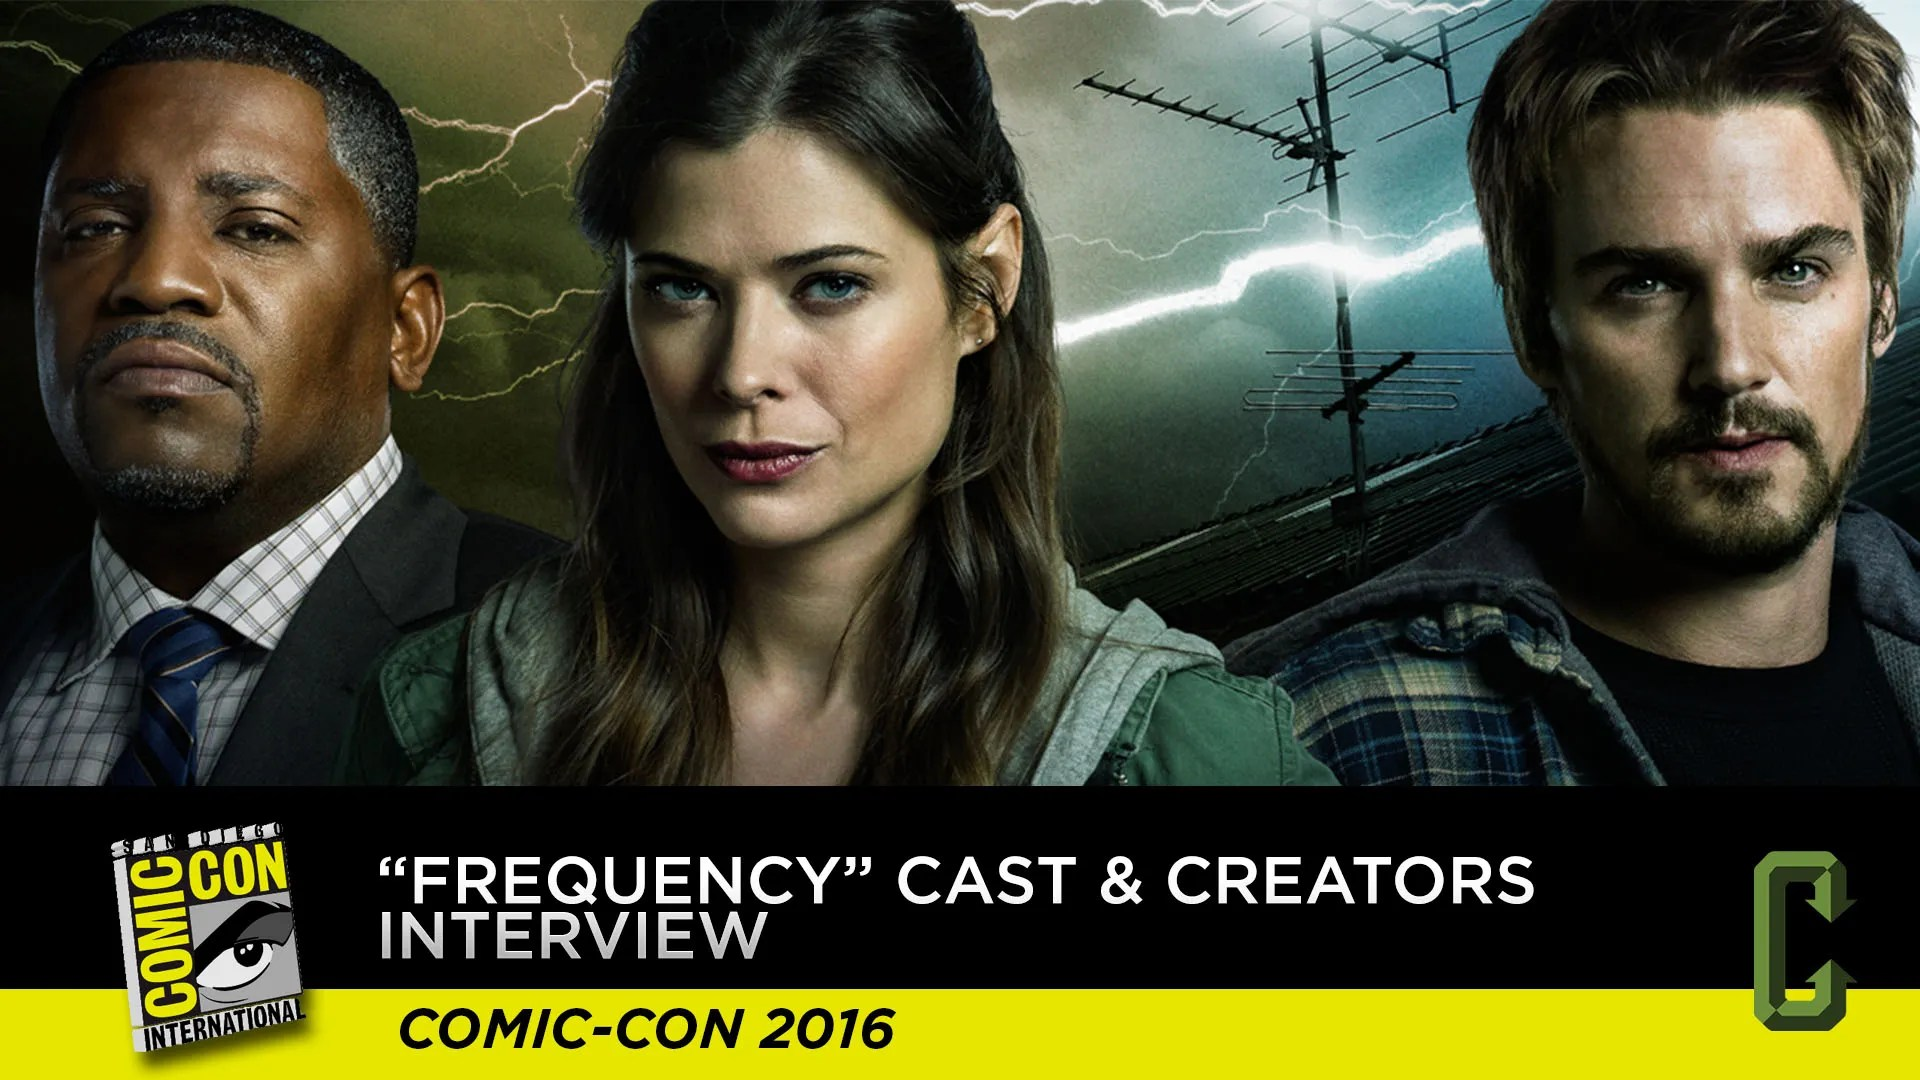 Frequency Tv Frequency Cast Producers On Why The Movie Makes A Good Tv Show